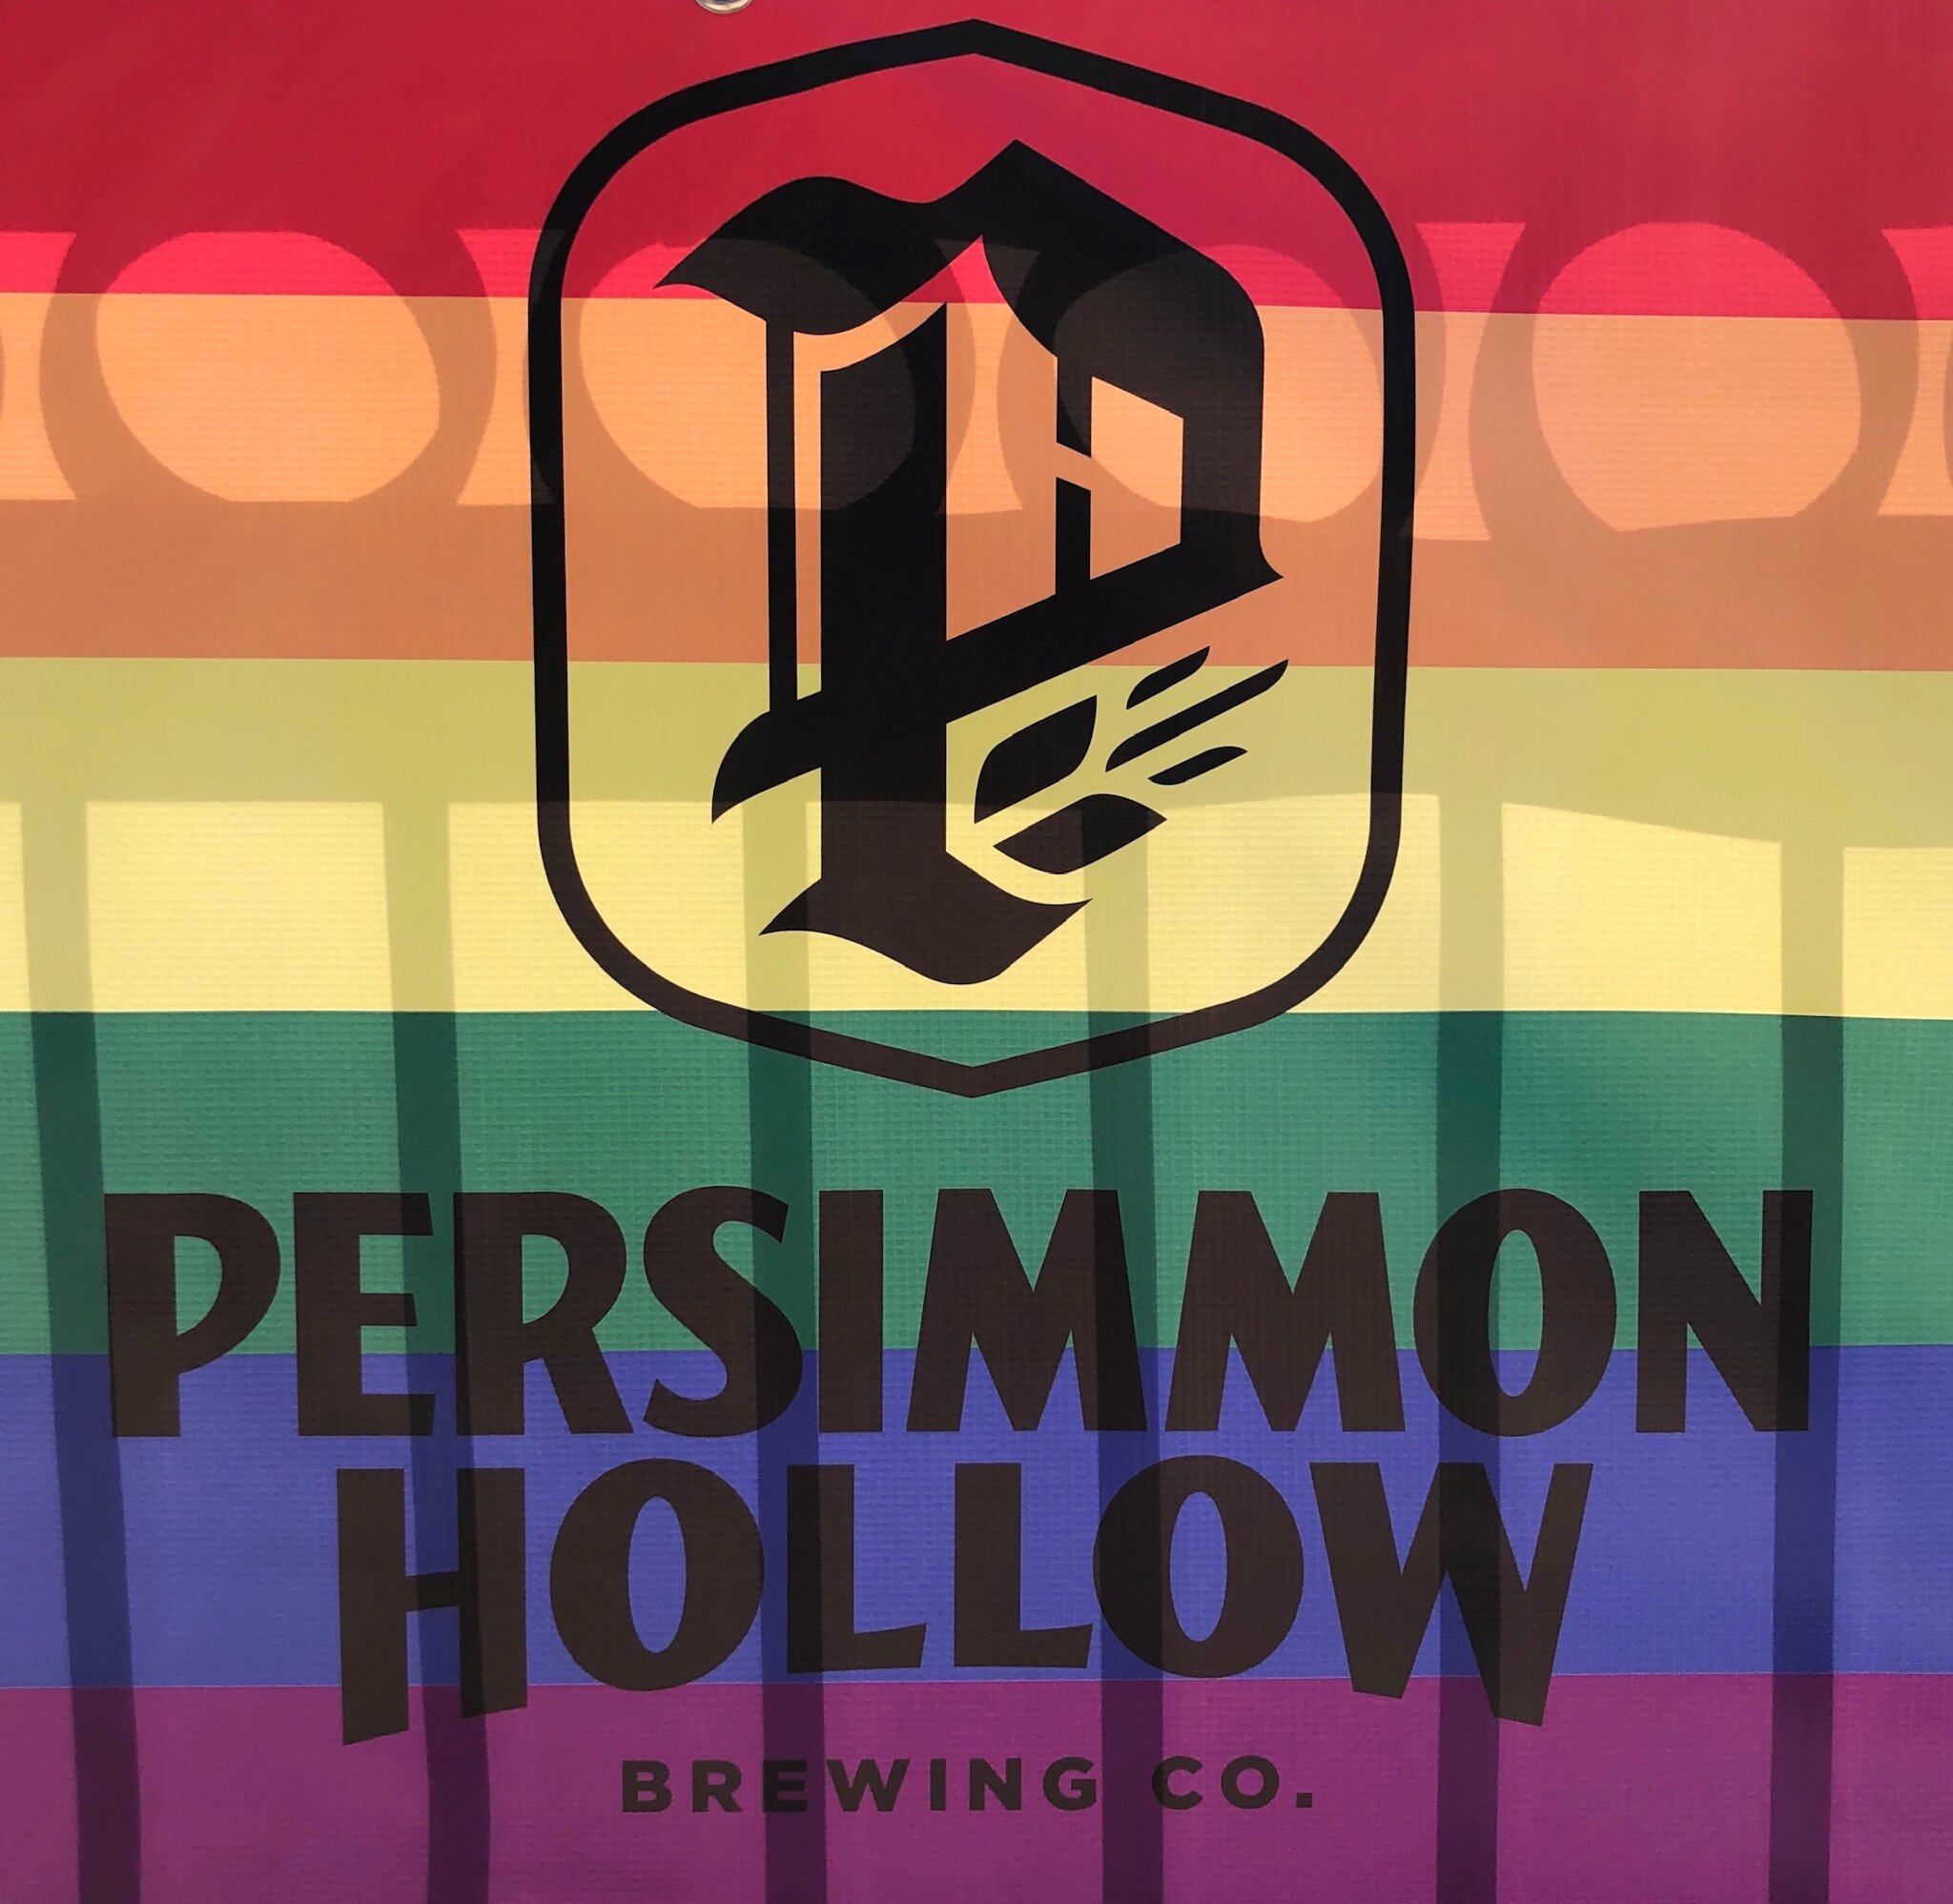 Pictured: Persimmon Hollow banner at the Come Out With Pride Orlando Festival on October 12.